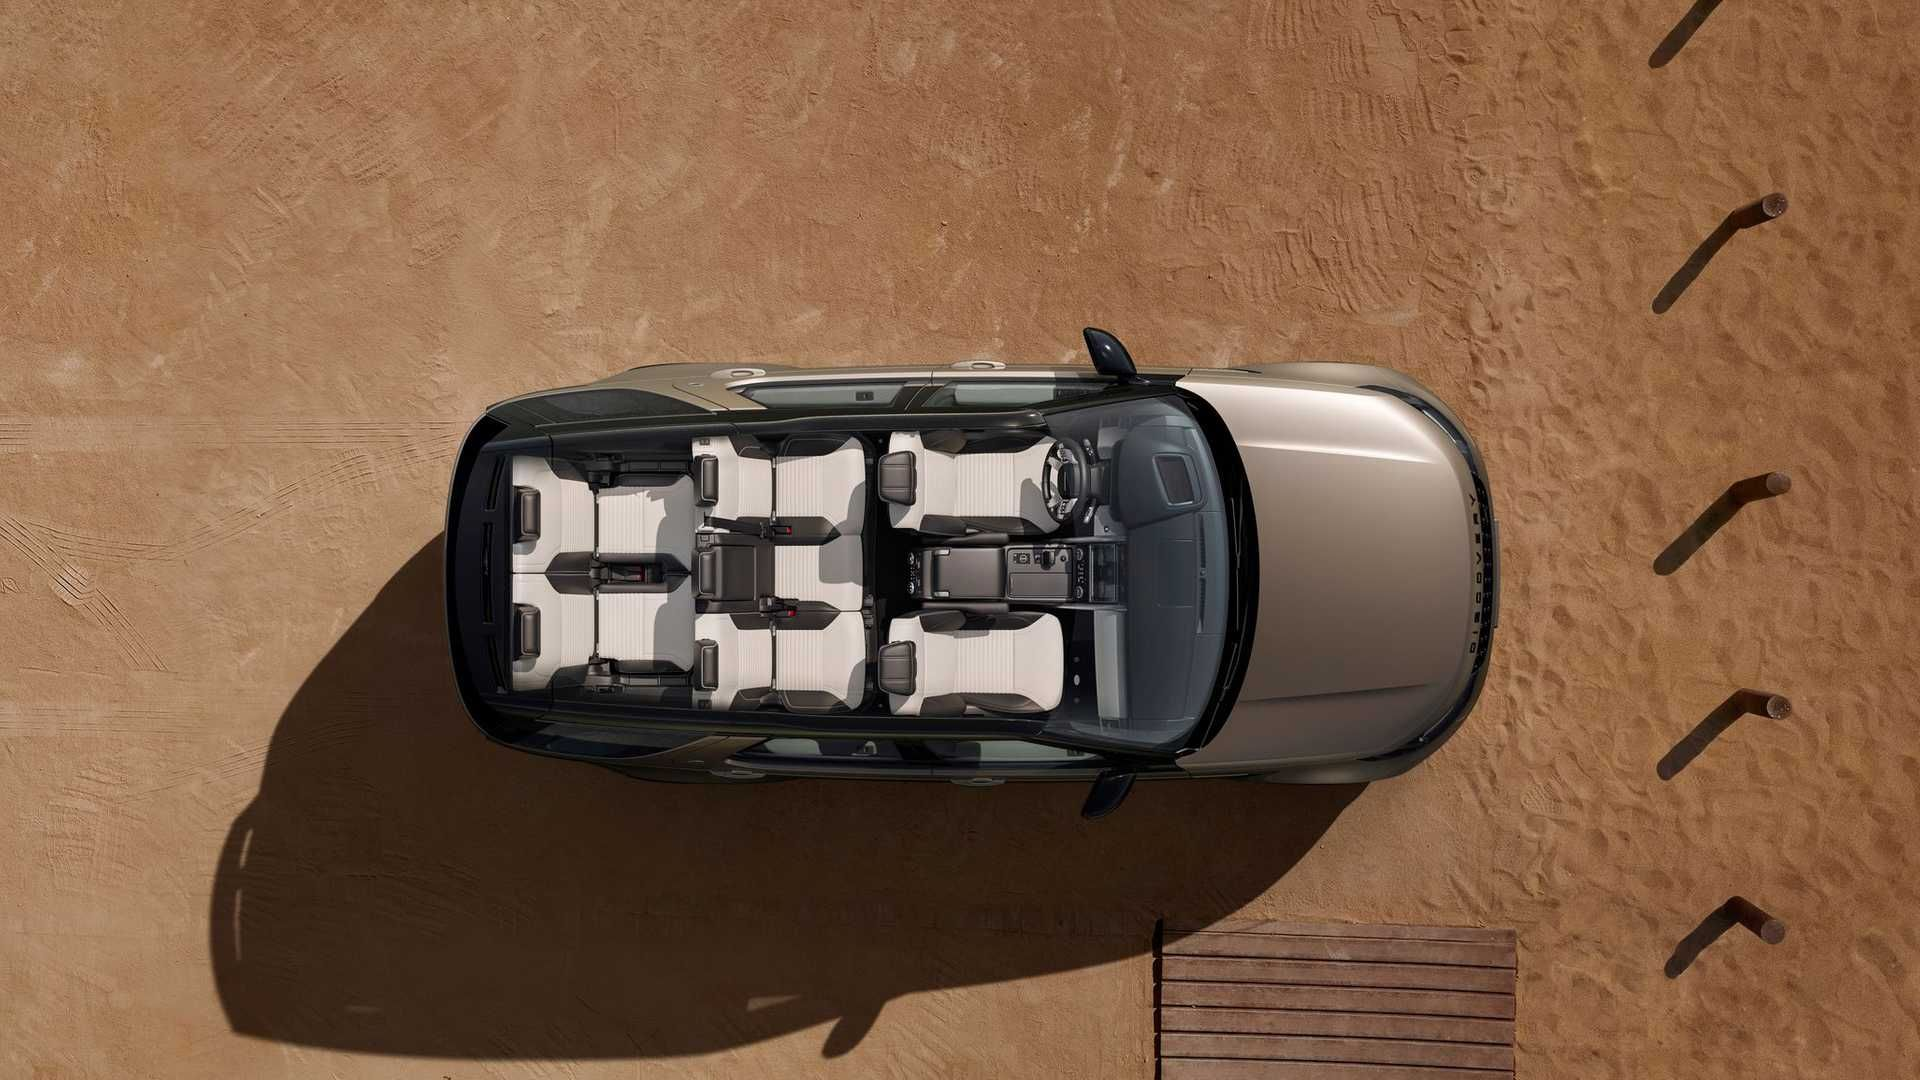 2021-Land-Rover-Discovery-65